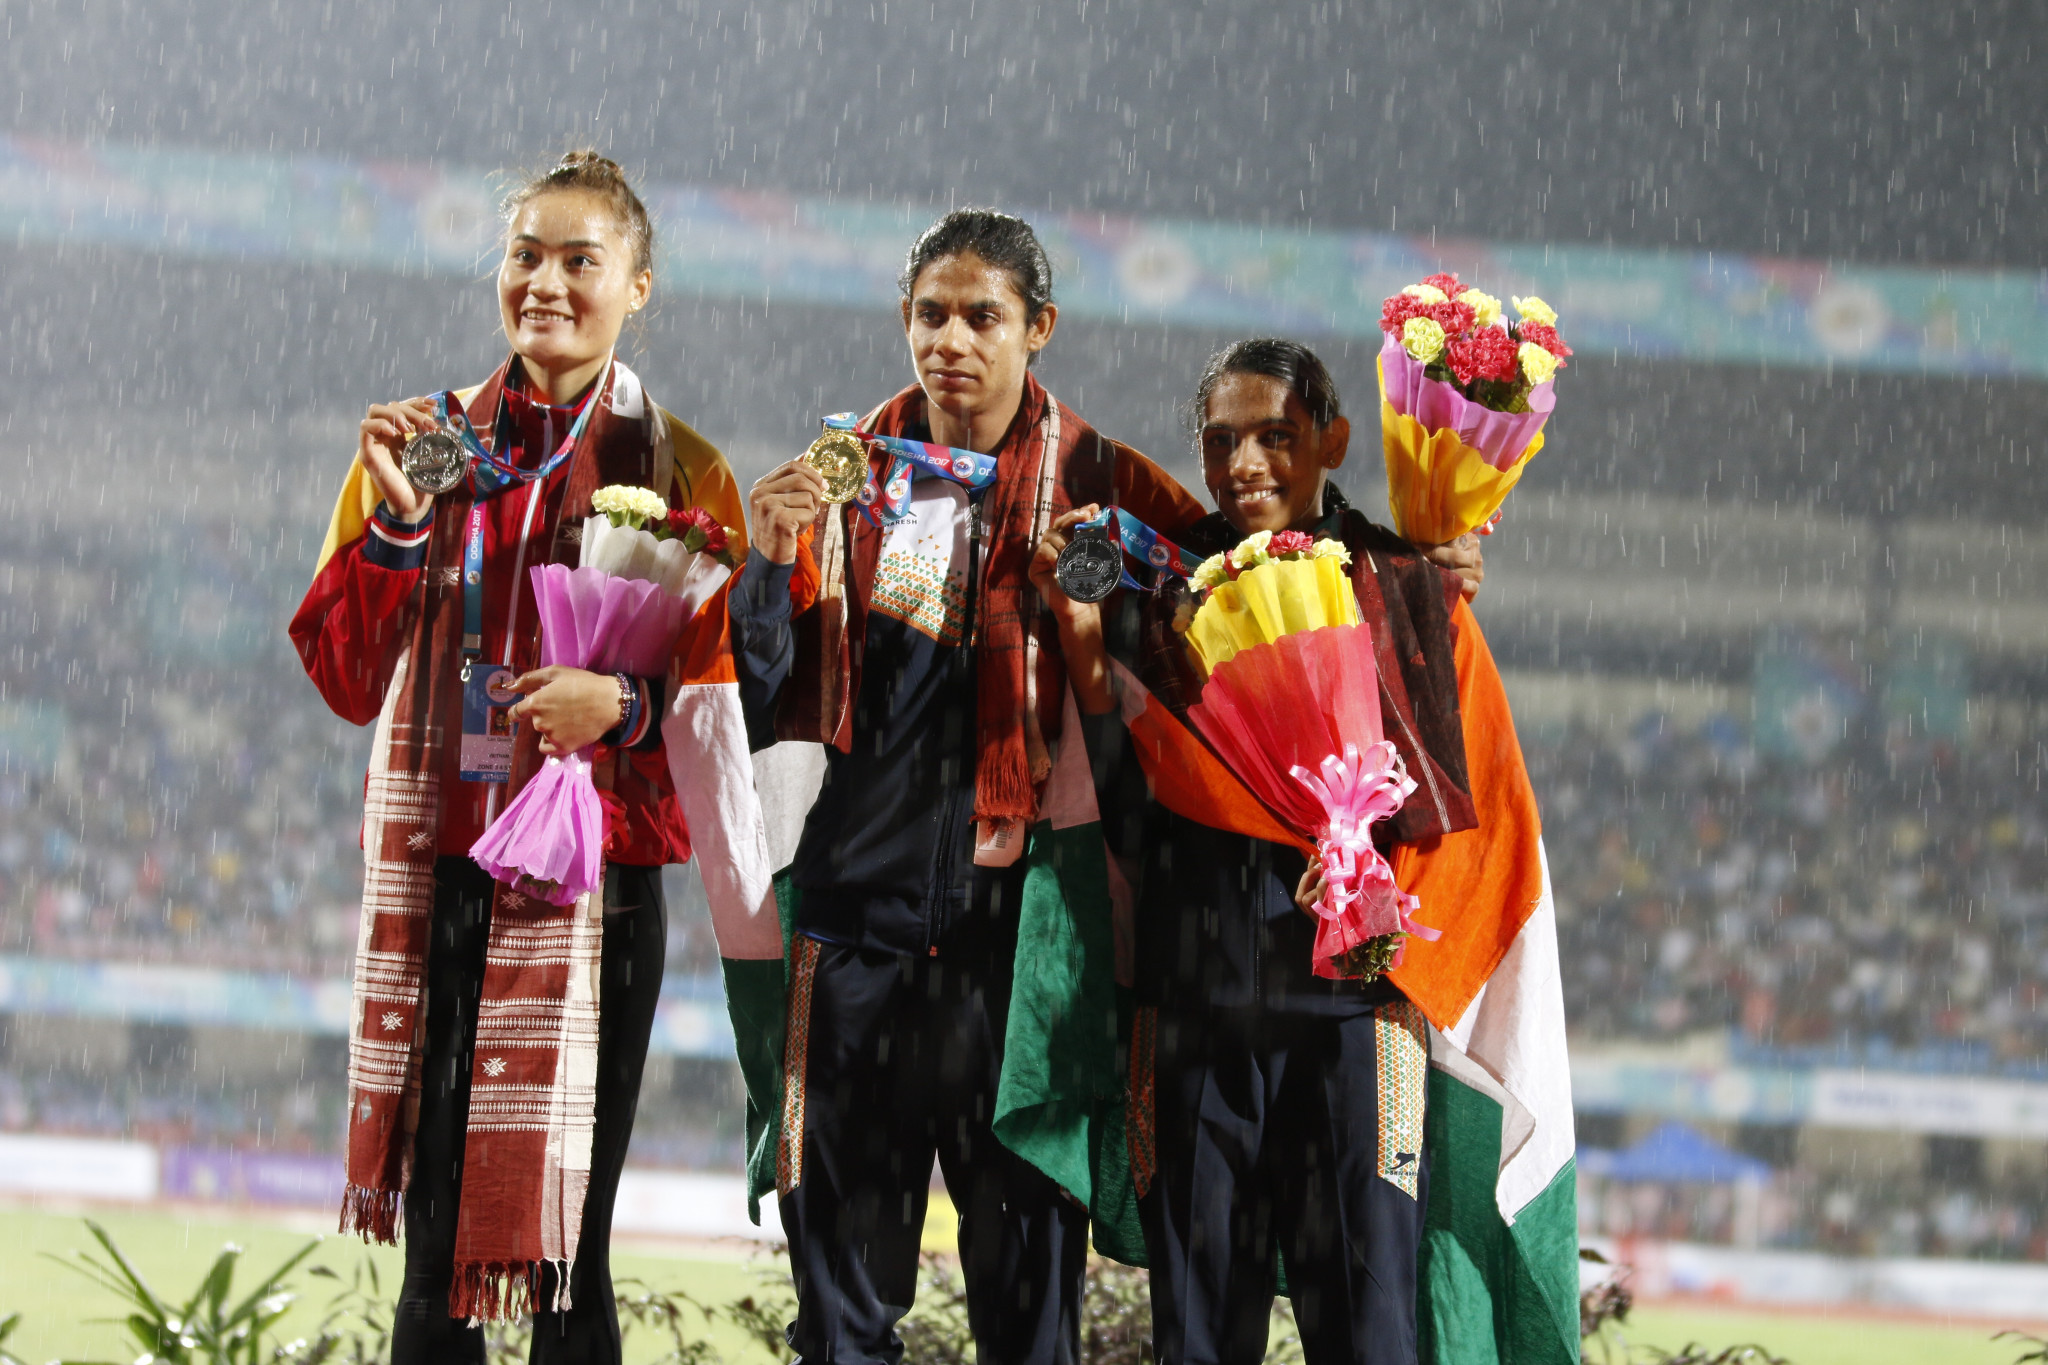 India's Nirmala Sheoran, centre, had won two gold medals at the 2017 Asian Championships in Bhubaneshwar ©Wikipedia